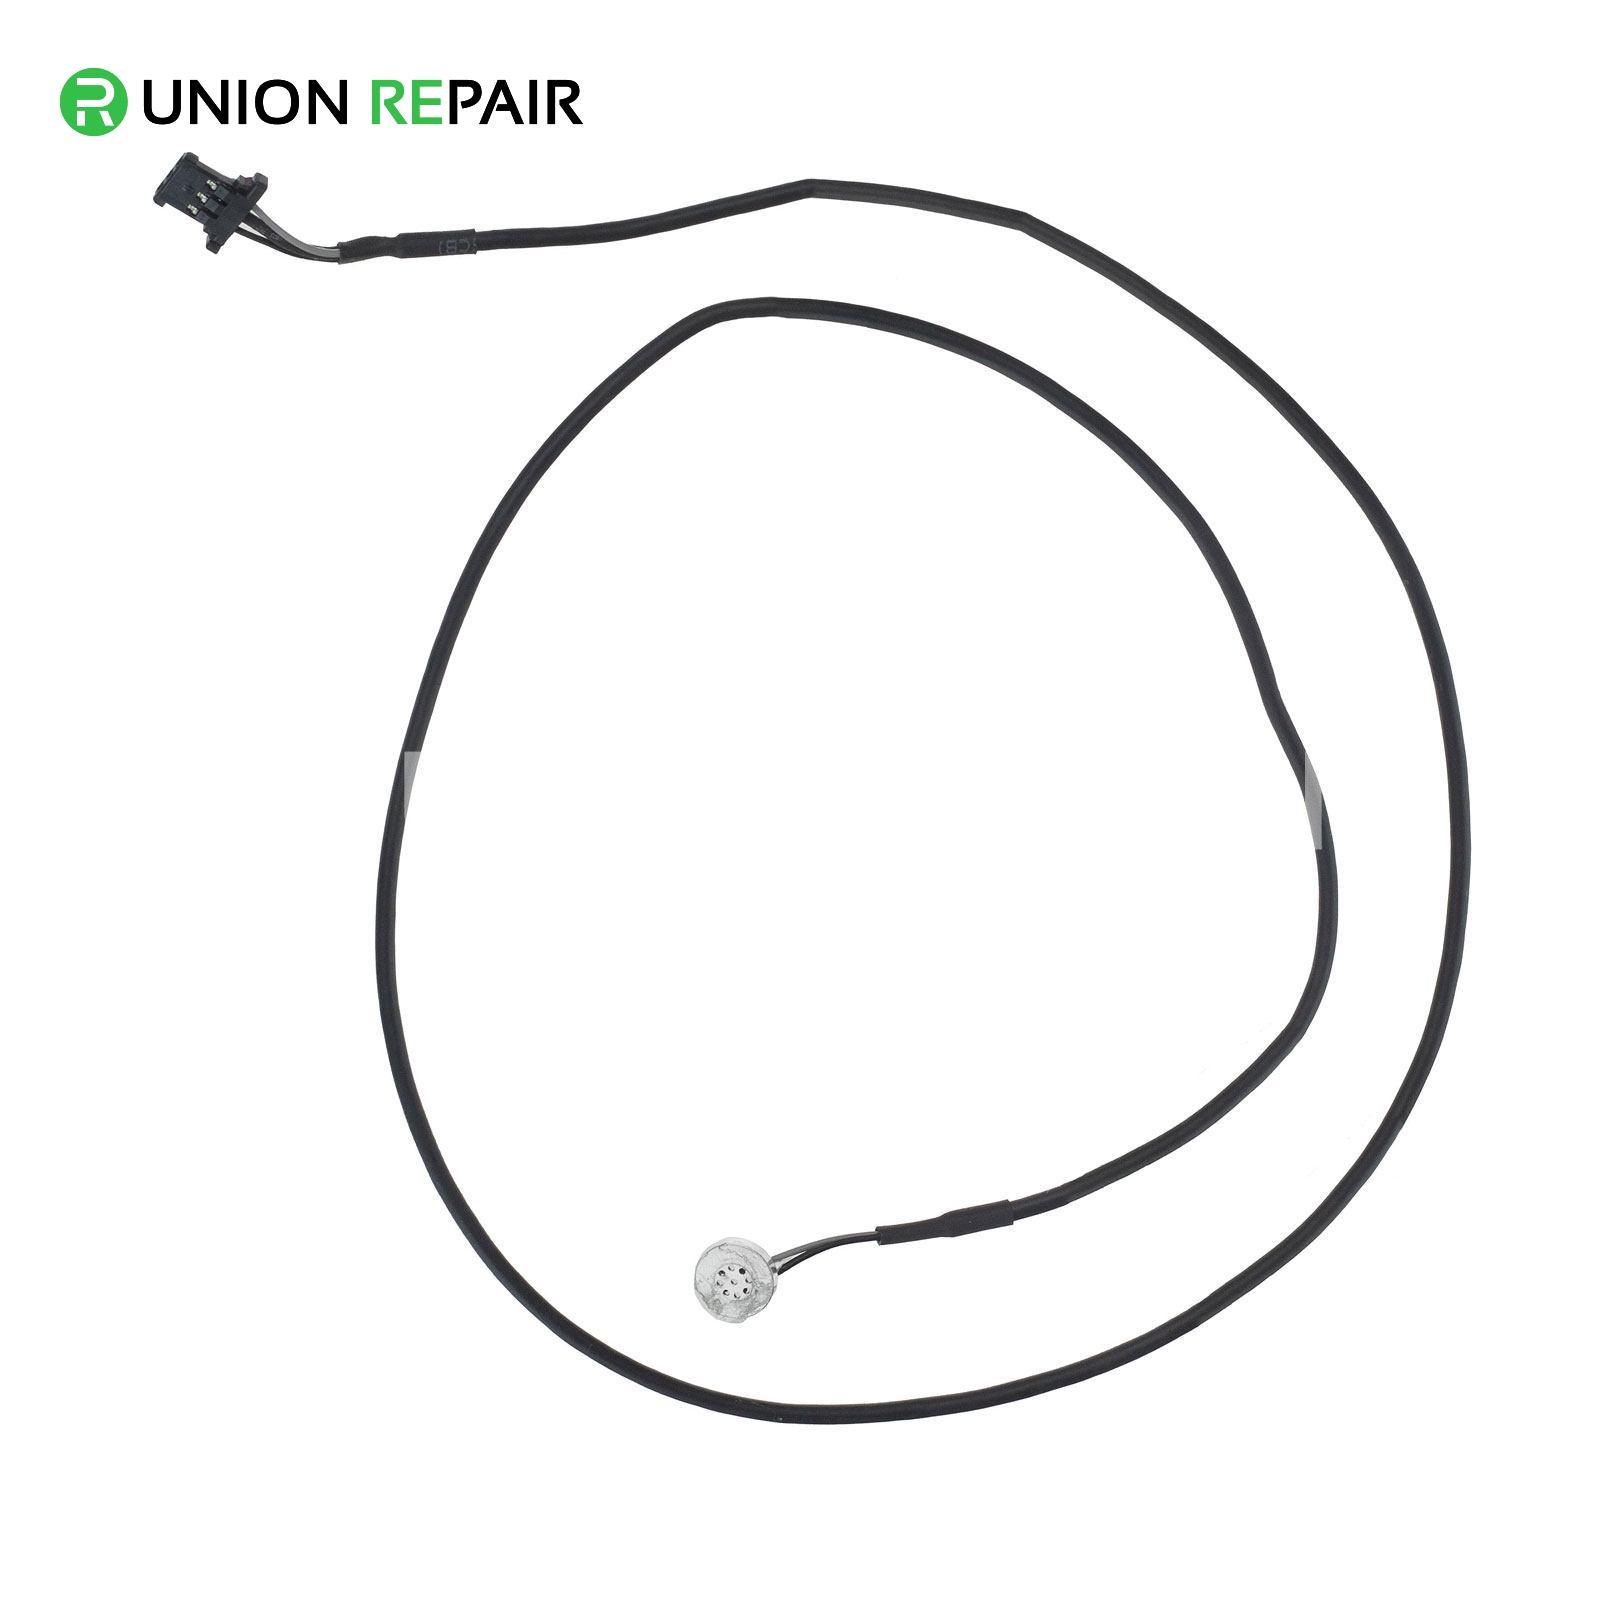 """Microphone Cable for iMac 21.5"""" A1311 (Mid 2011 - Late 2011)"""